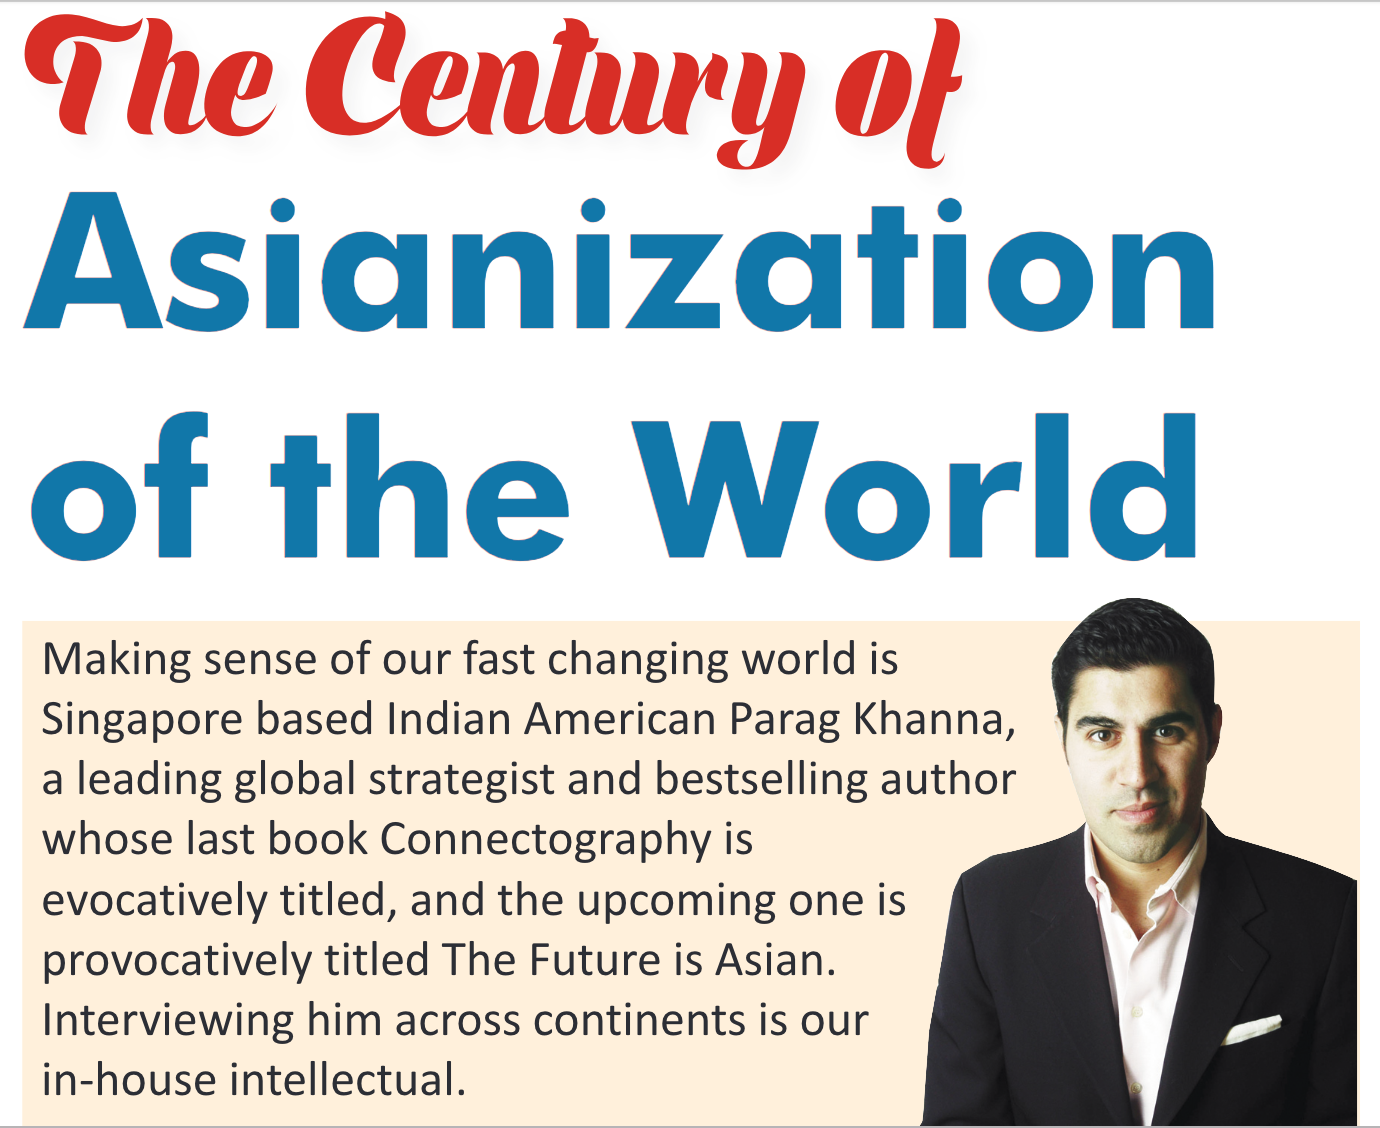 The Century of Asianization of the world Parag khanna.png